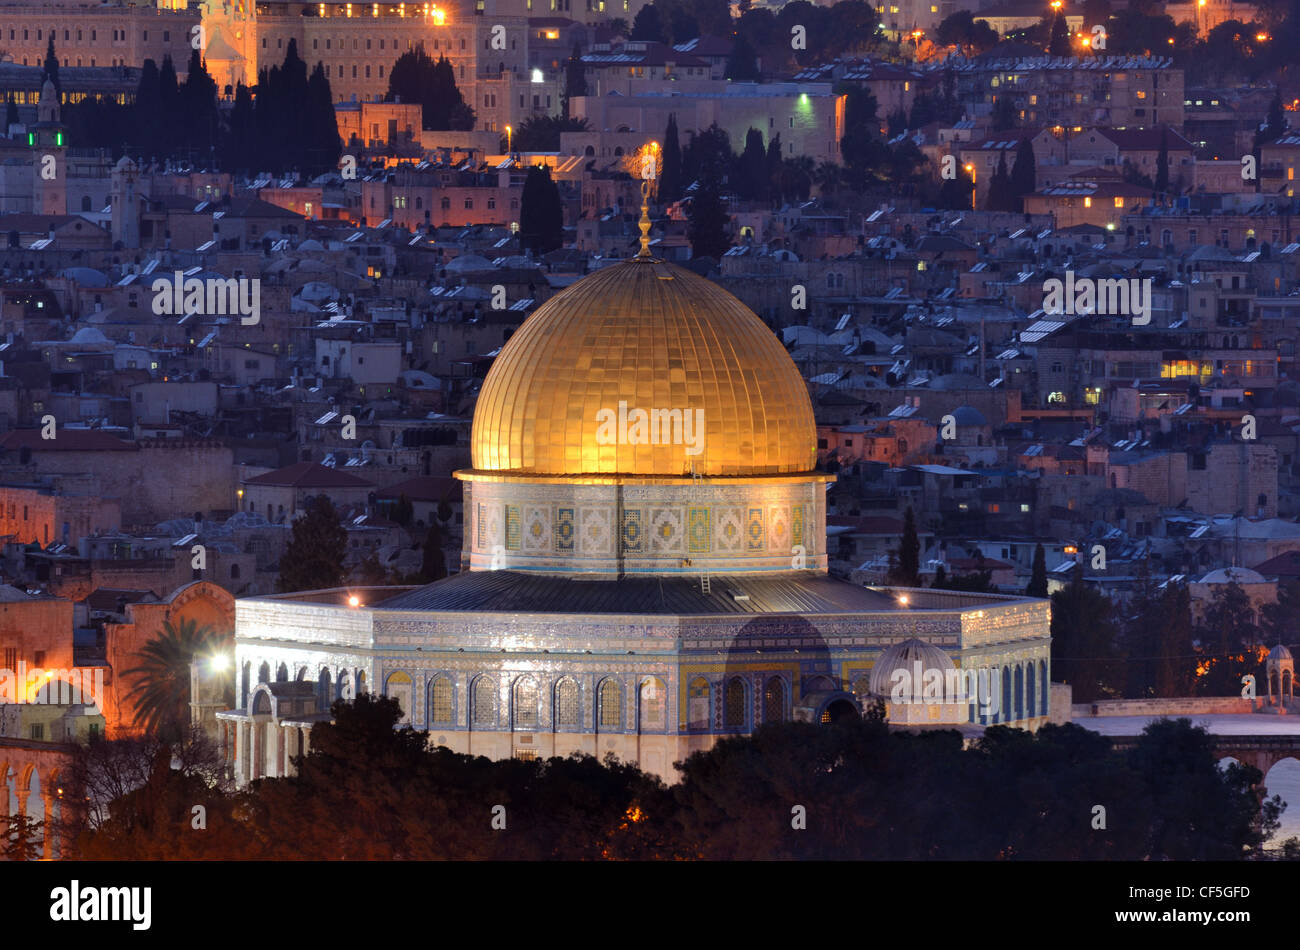 Dome of the Rock along the Skyline of the Old City of Jerusalem, Israel. - Stock Image